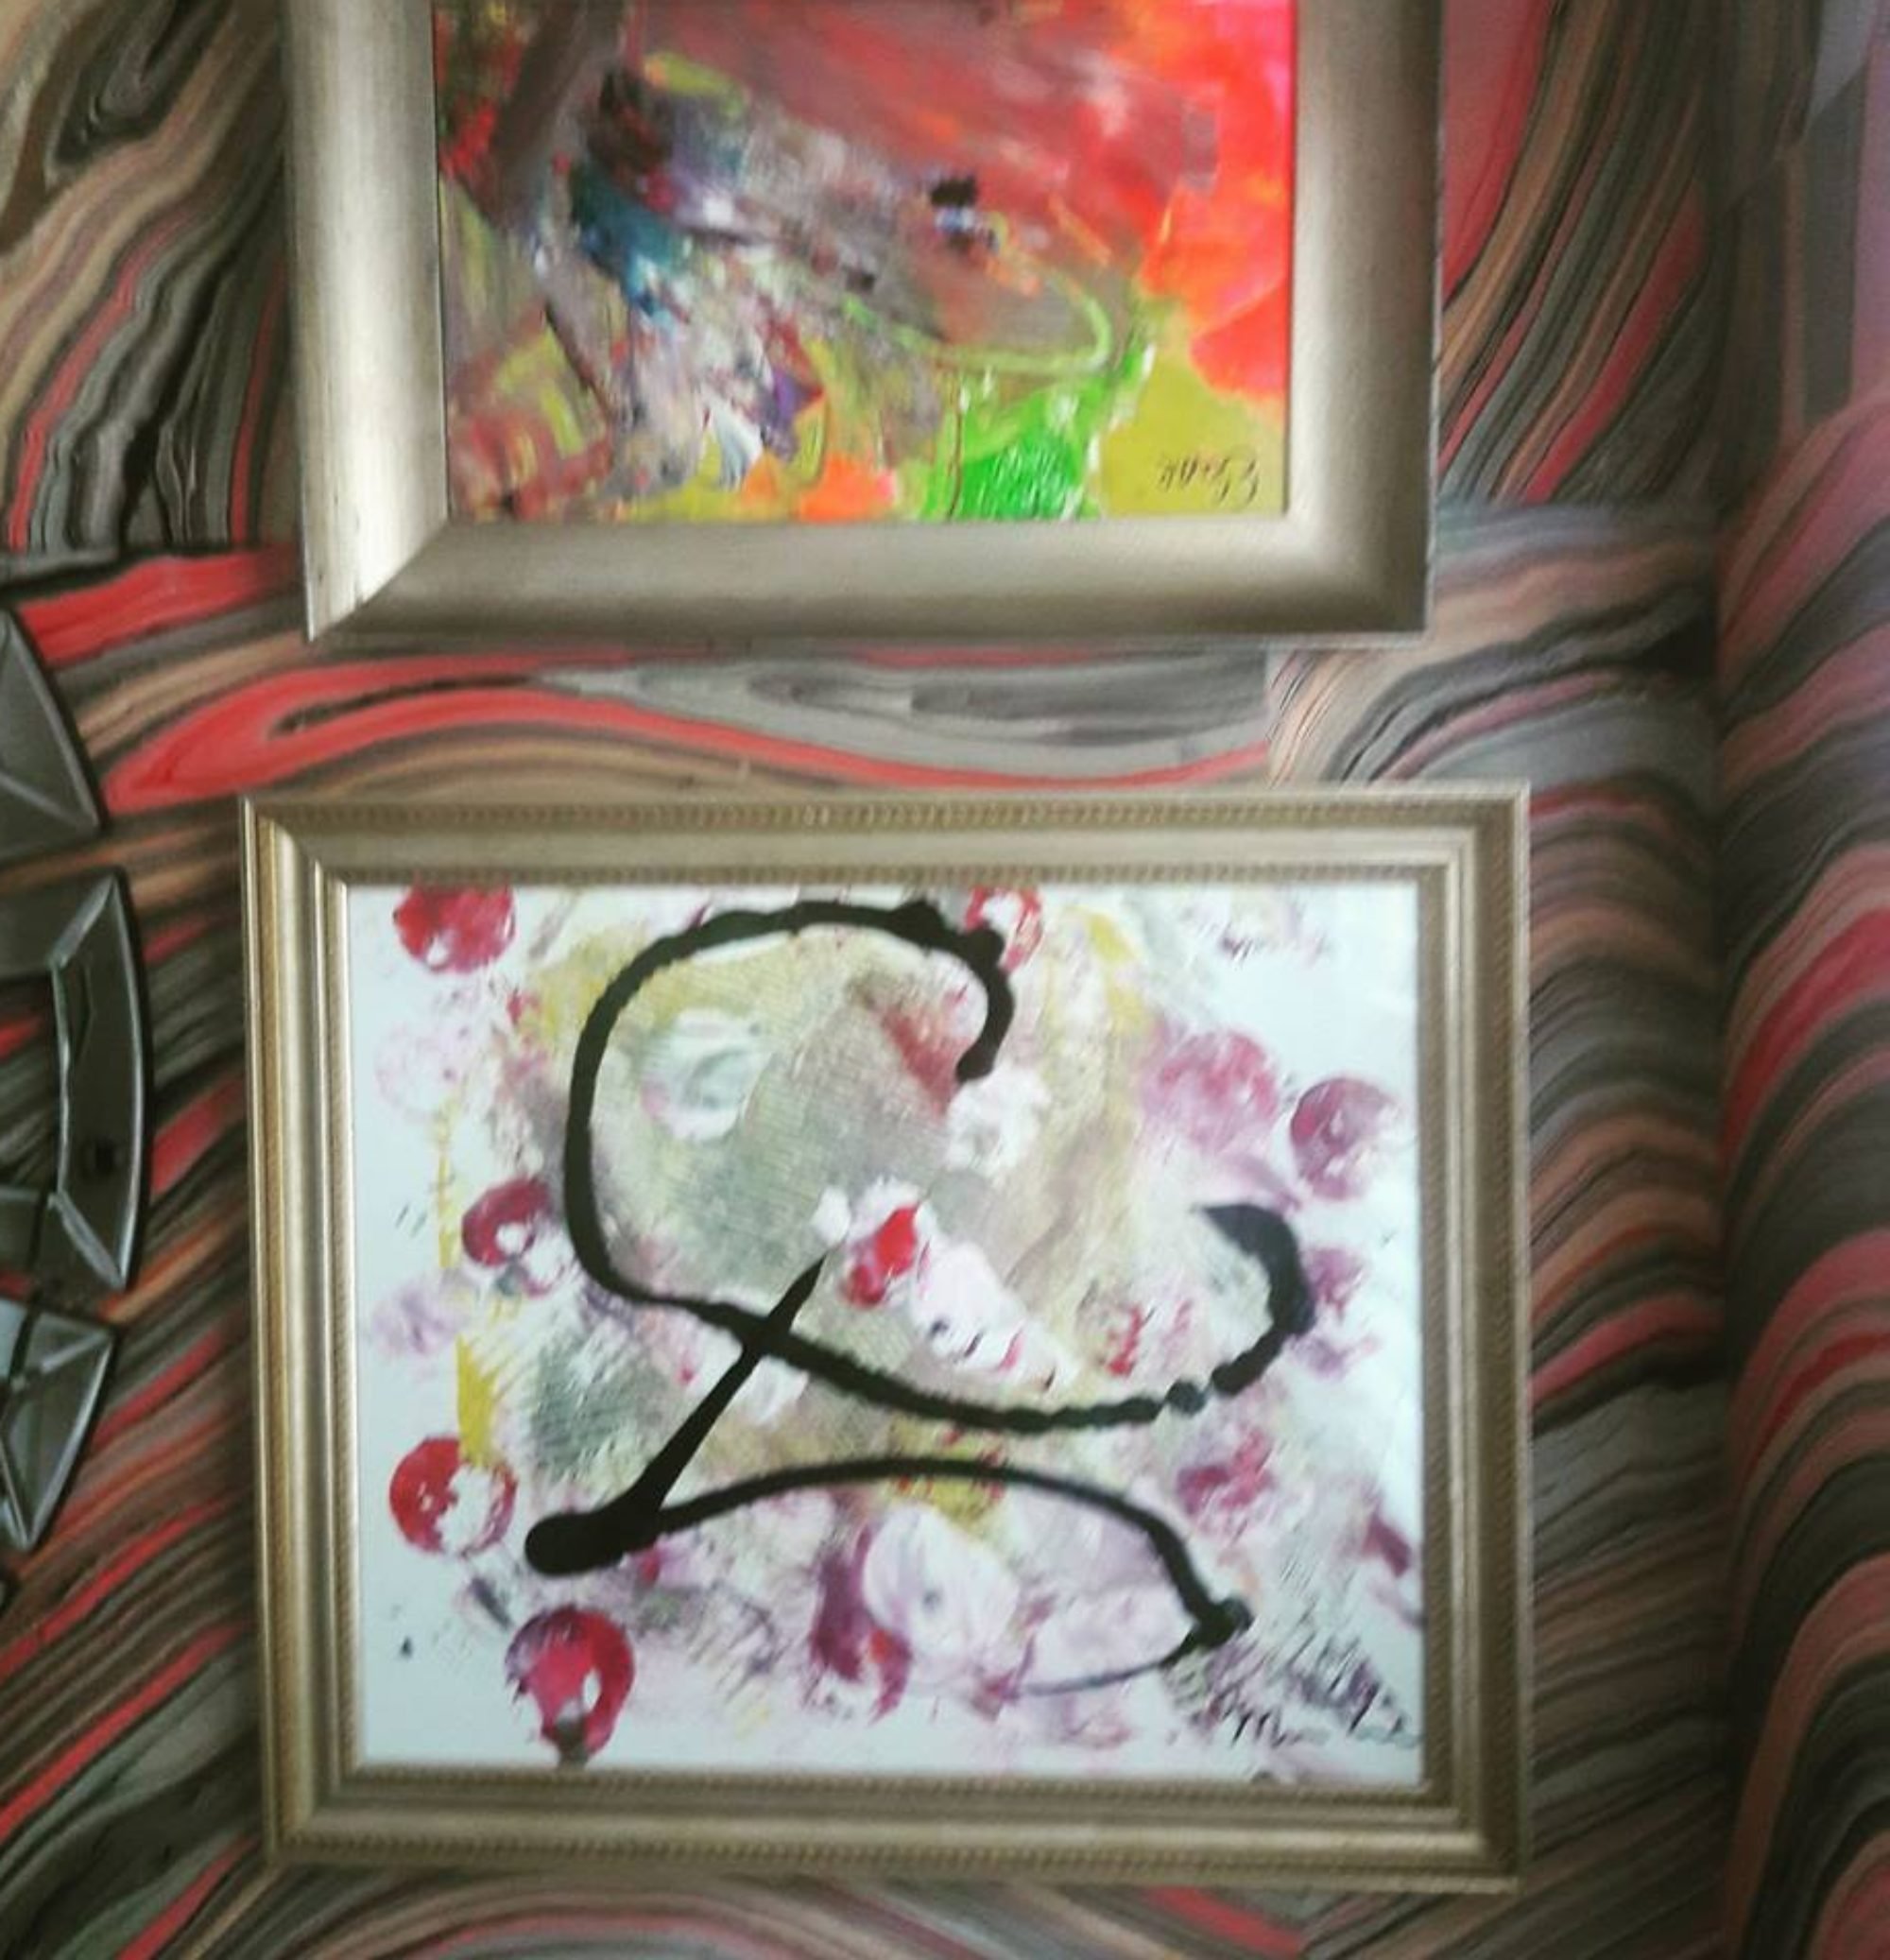 Abstract Art for Autism and Other Special Abilities